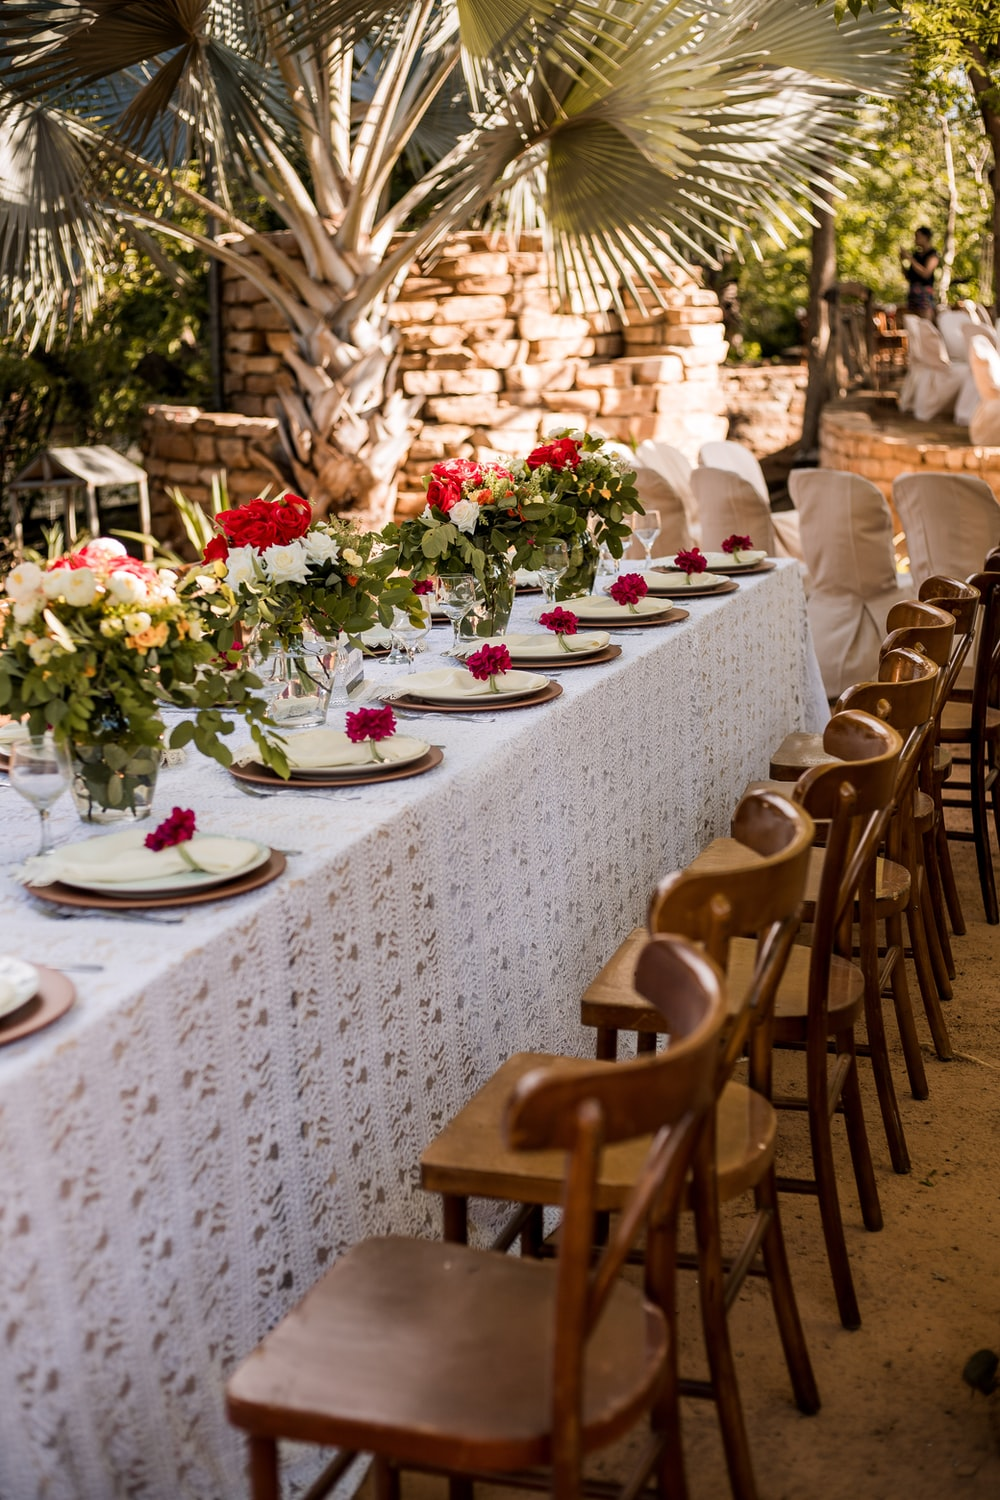 brown wooden chairs and table with flowers on top